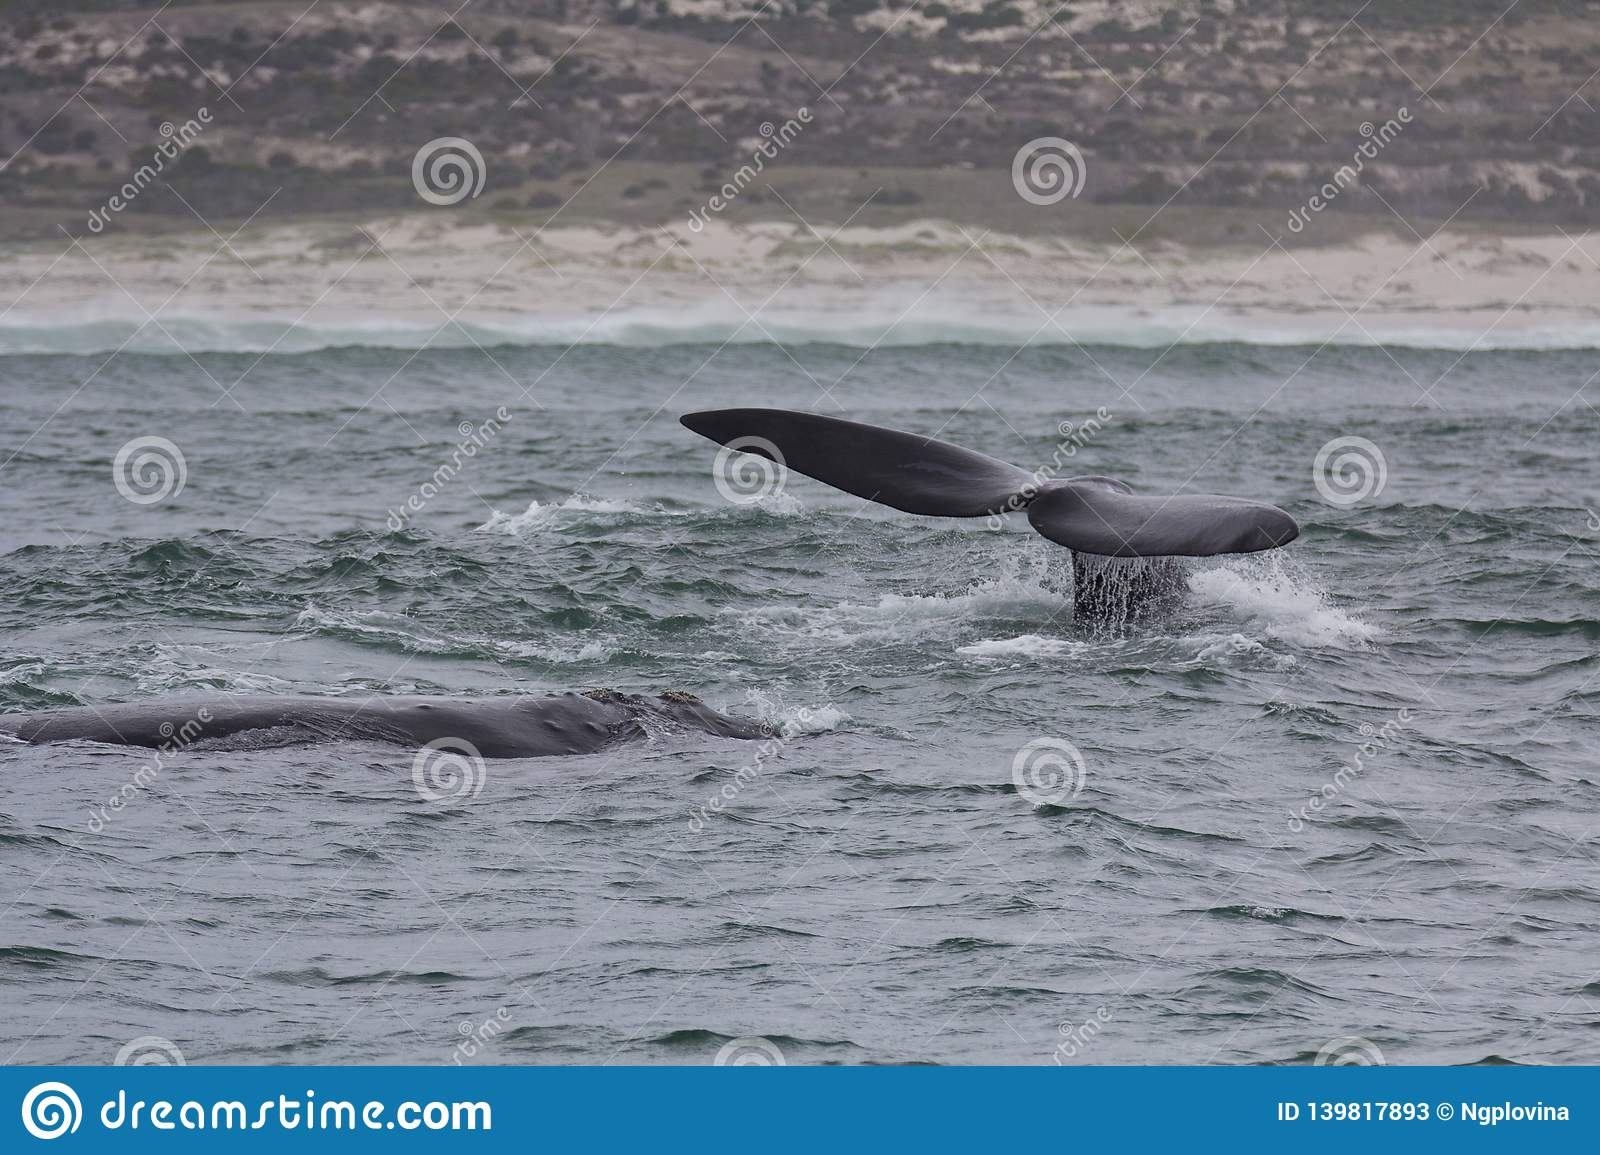 Back and tail of Southern Right Whales swimming near Hermanus, Western Cape. South Africa.